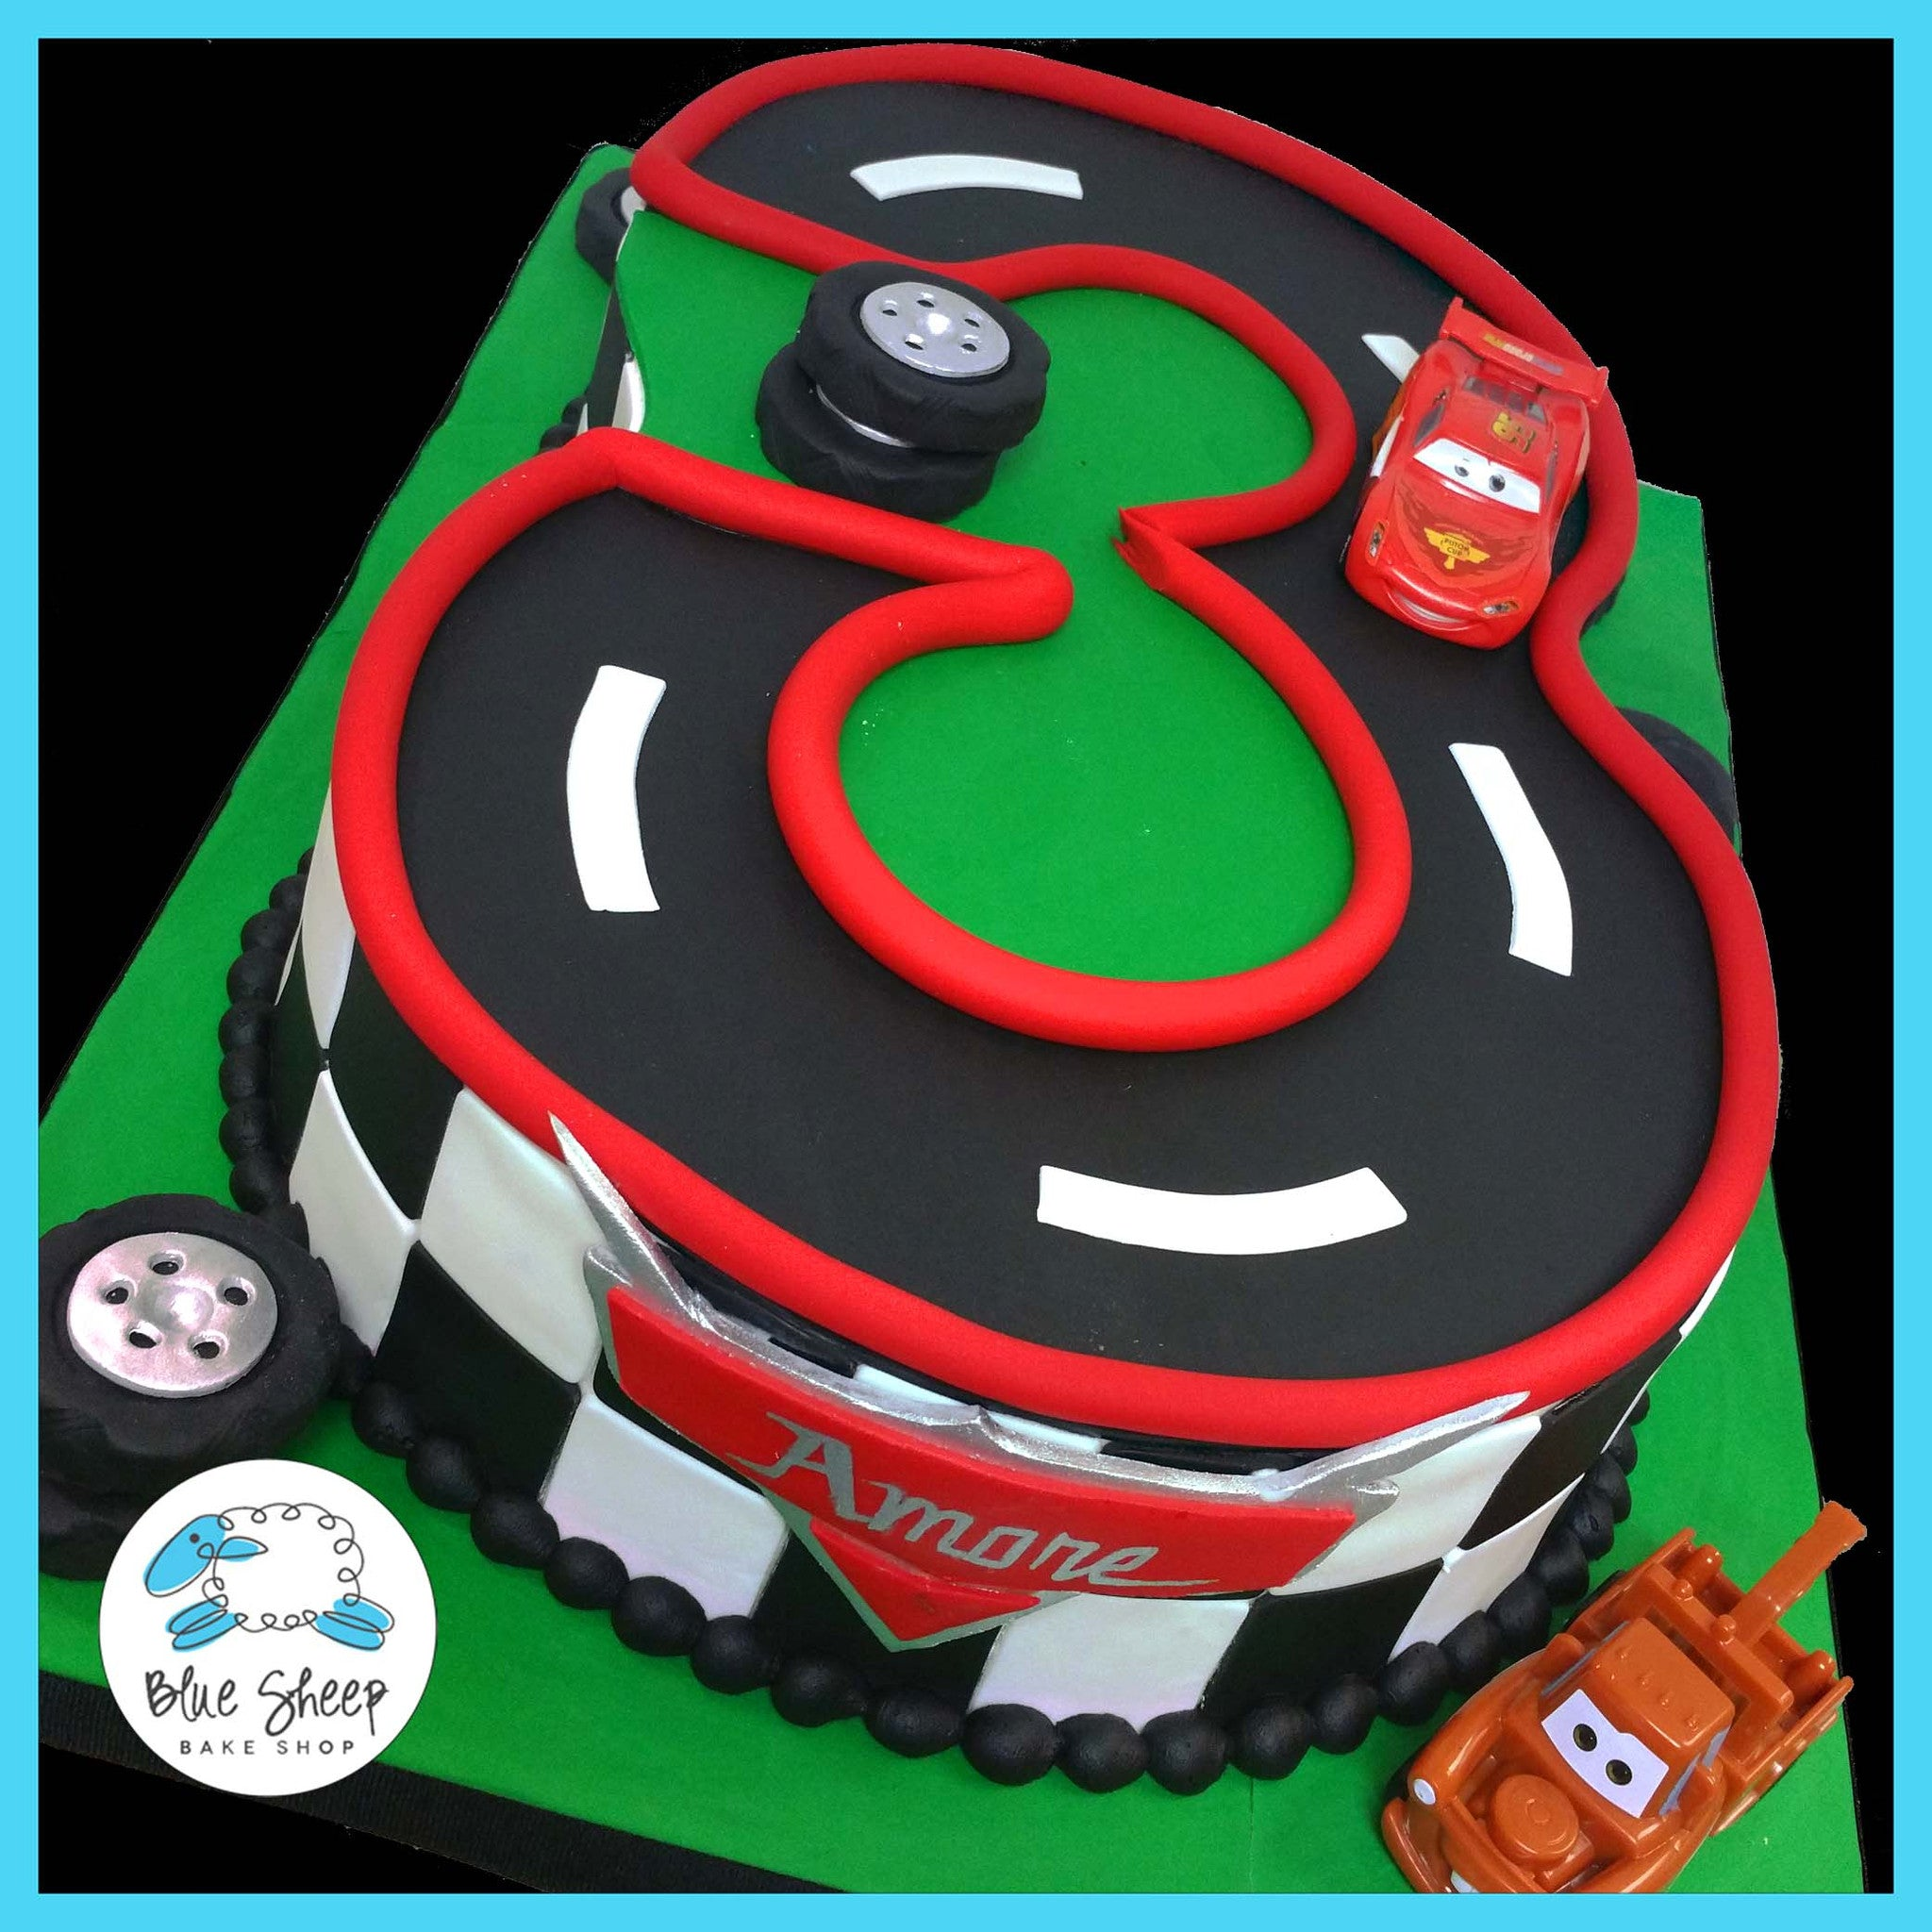 Magnificent 3 Carved Cars Themed Cake Blue Sheep Bake Shop Personalised Birthday Cards Cominlily Jamesorg